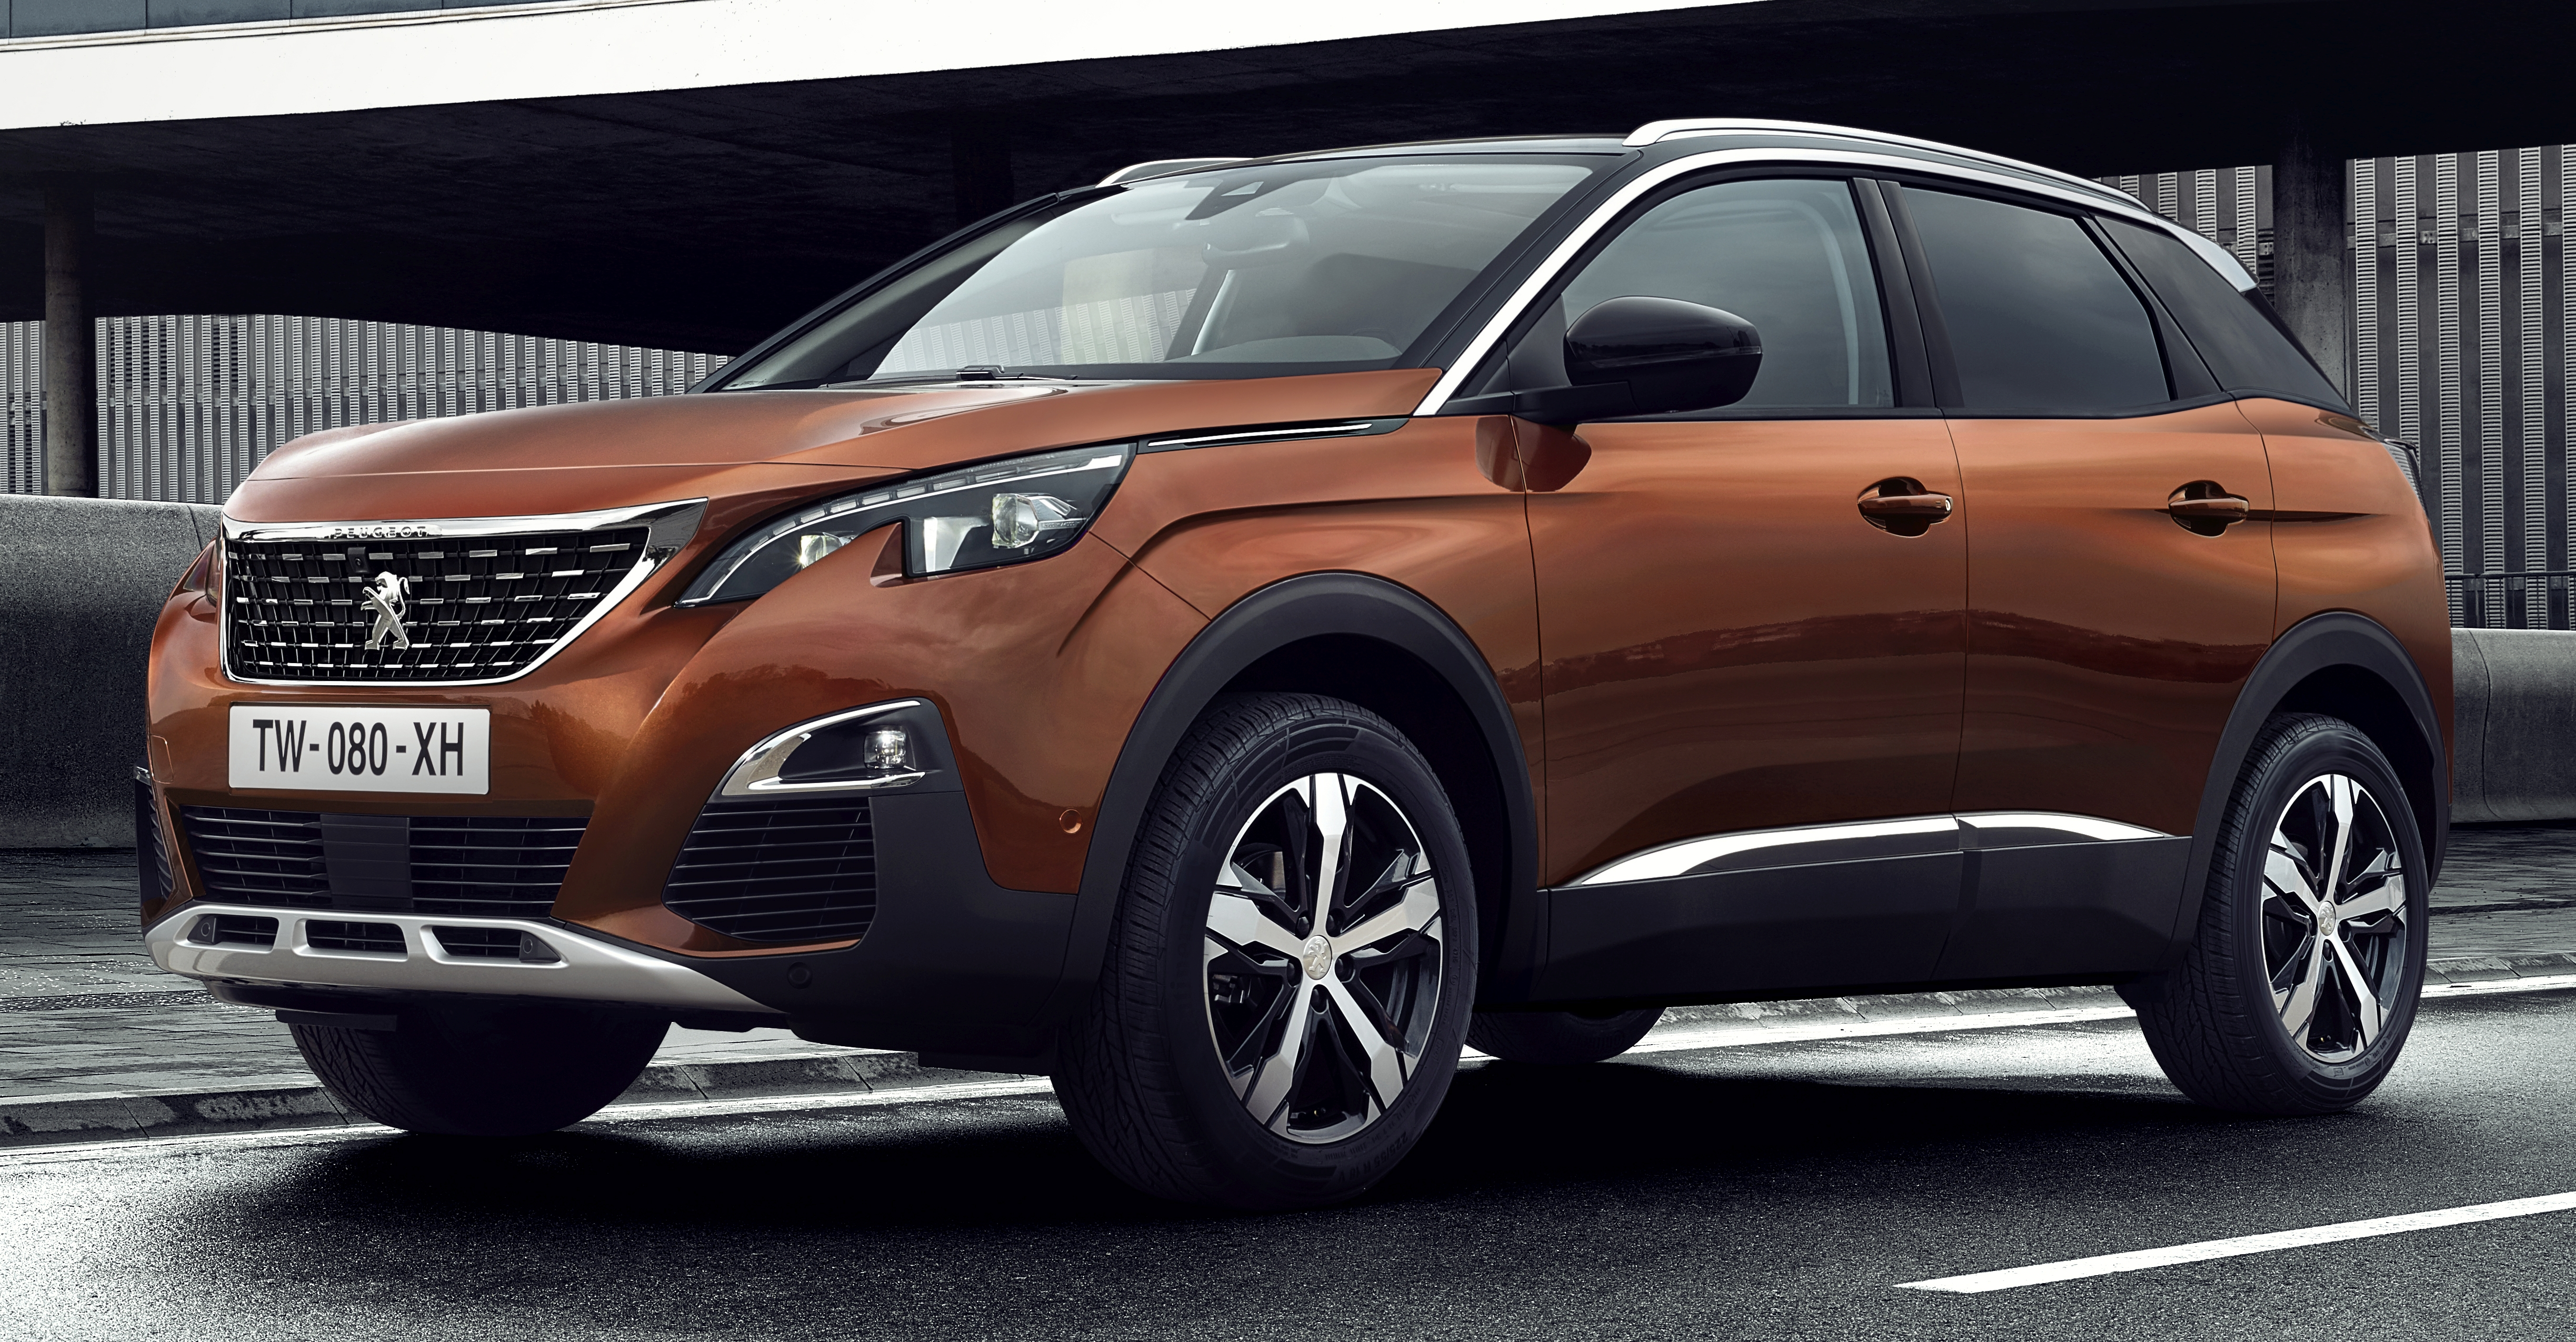 peugeot 3008 second gen suv debuts in paris paul tan image 497543. Black Bedroom Furniture Sets. Home Design Ideas